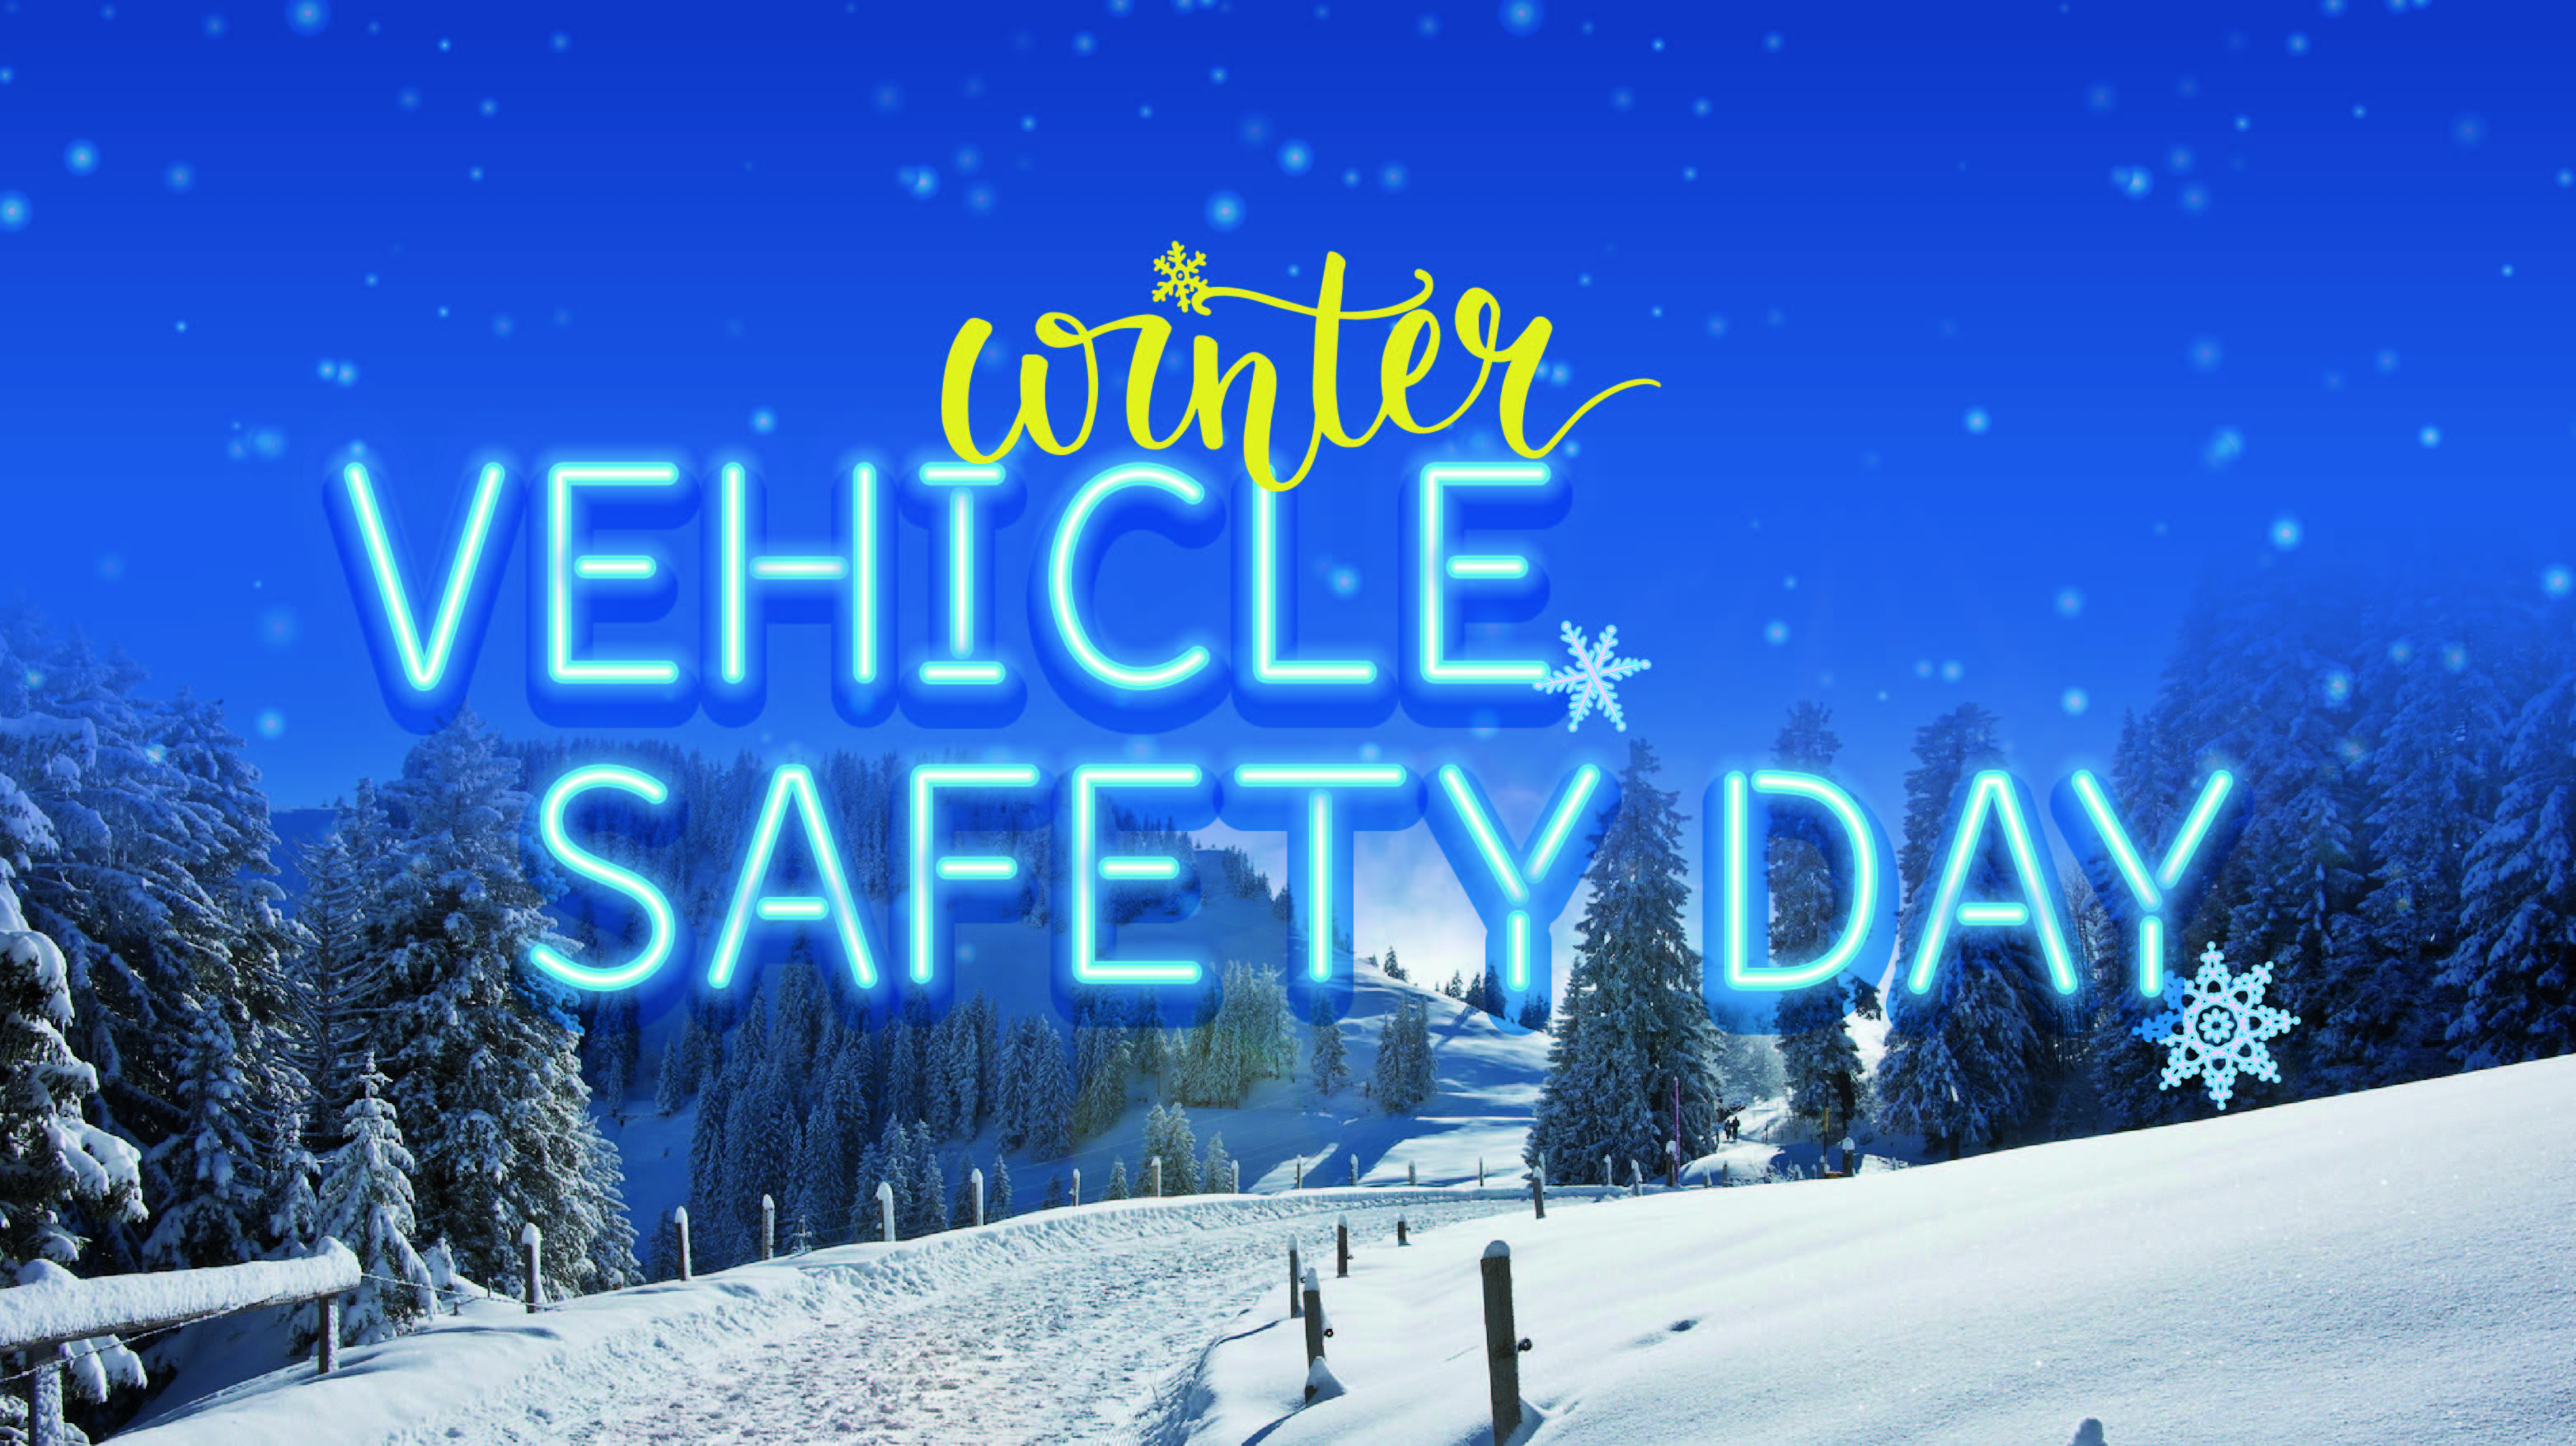 Winter Vehicle Safety Day